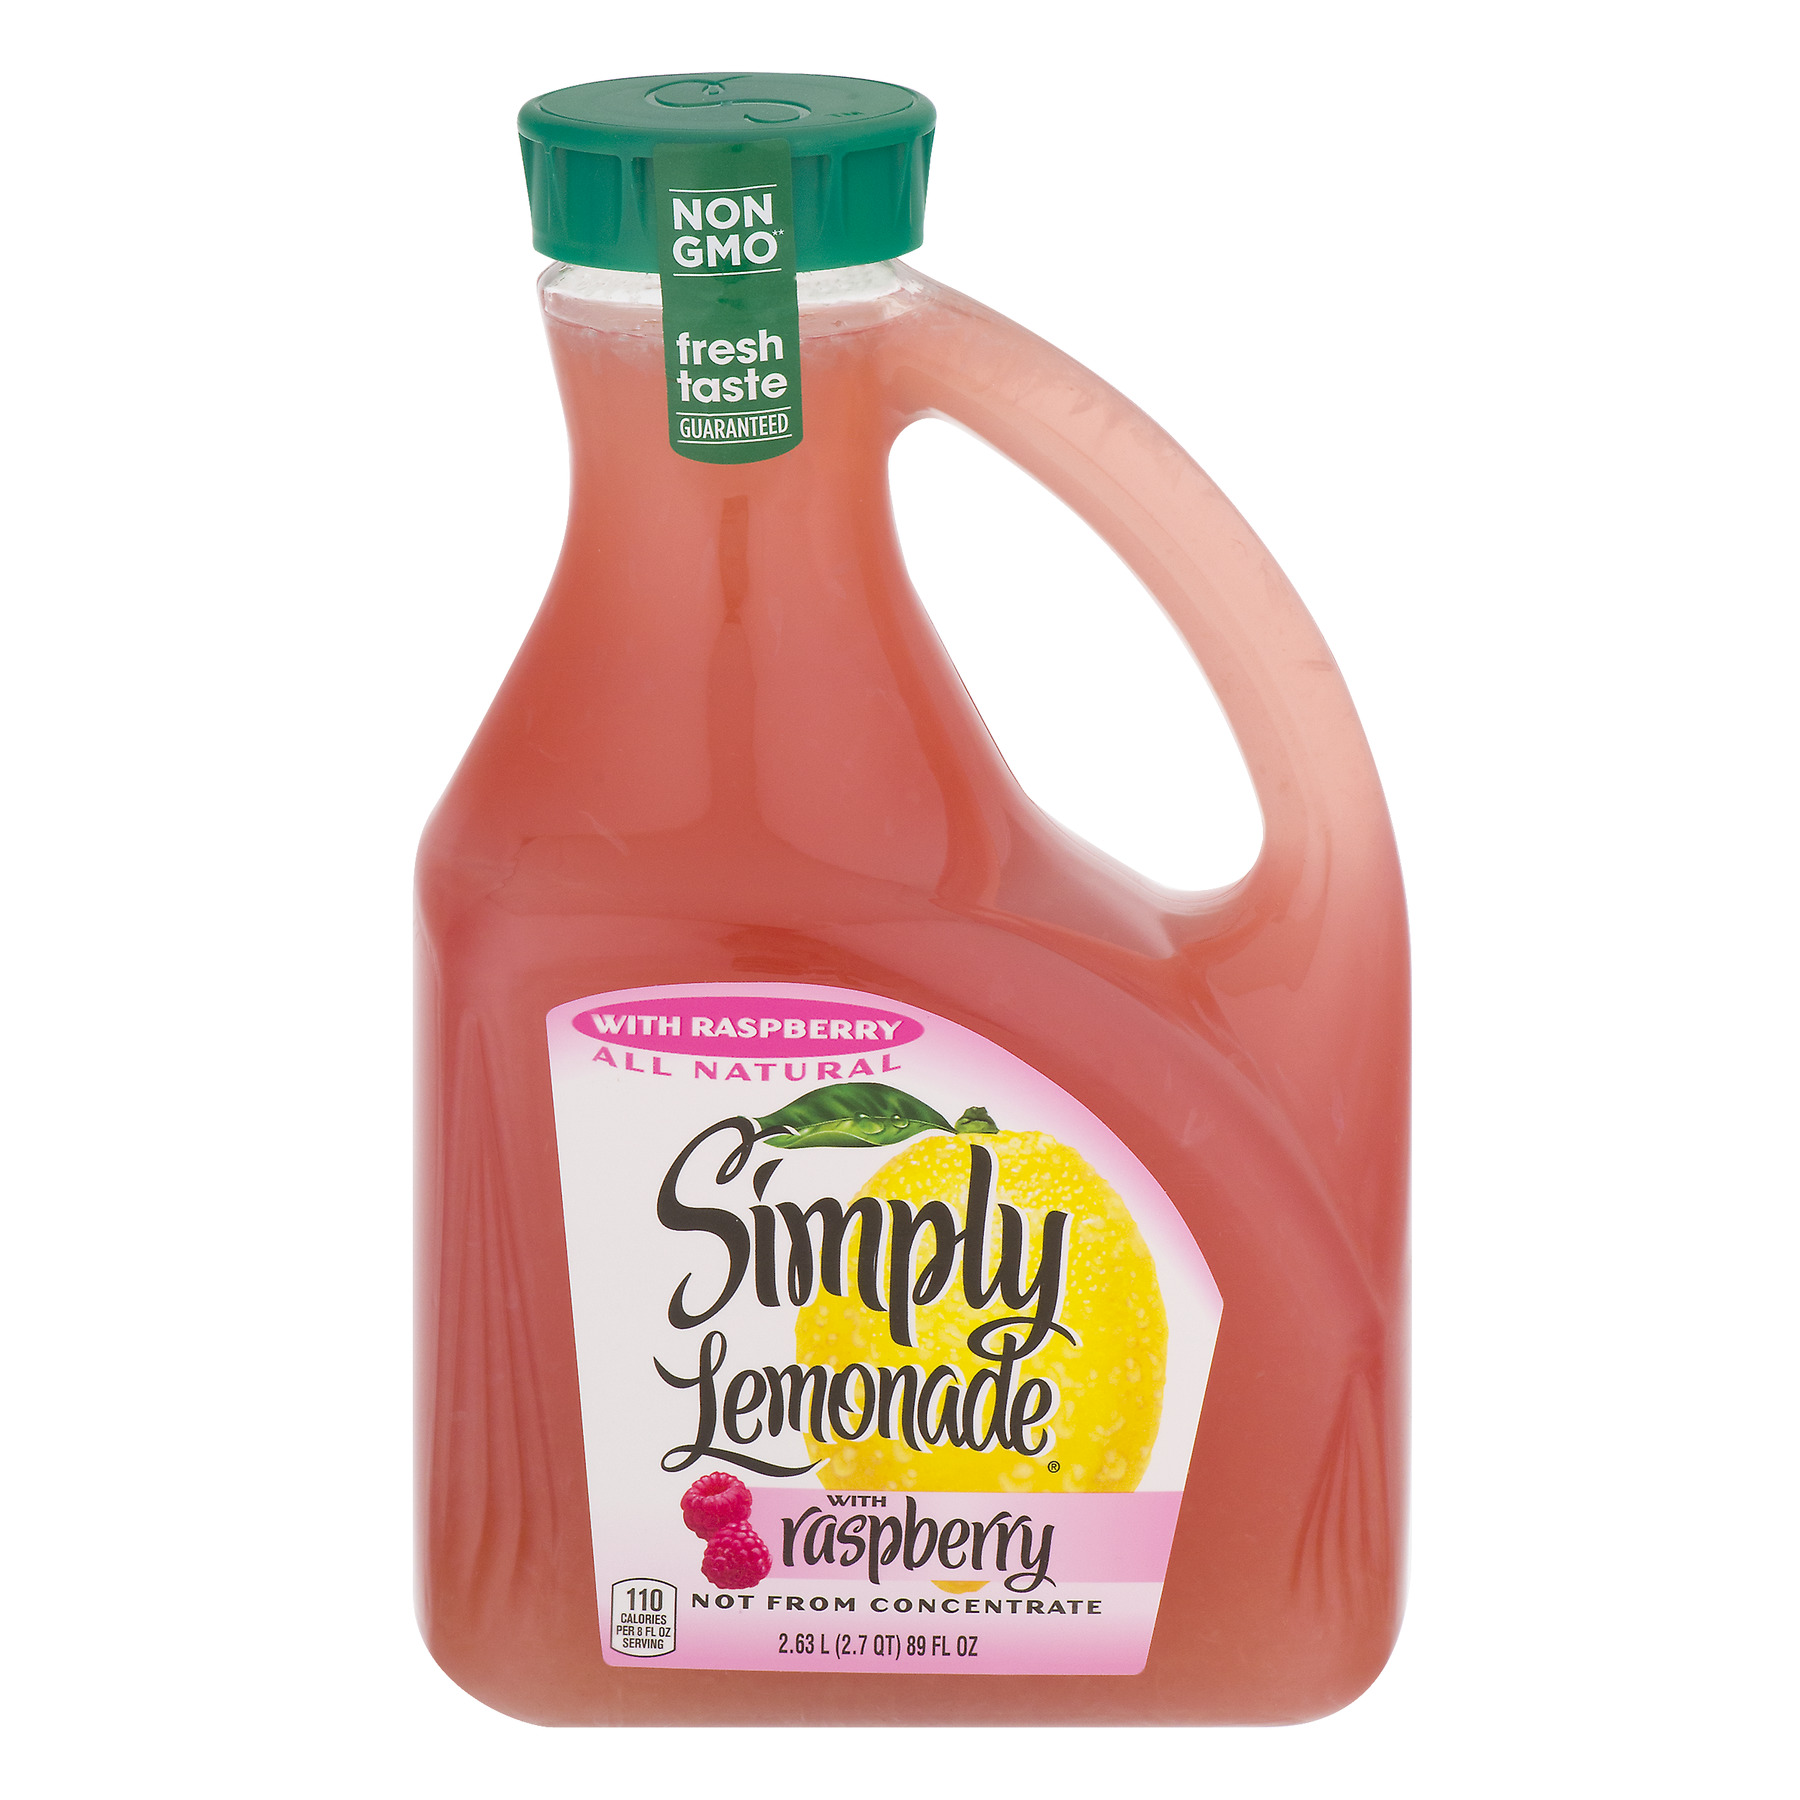 Simply Lemonade with Raspberry, 89.0 FL OZ